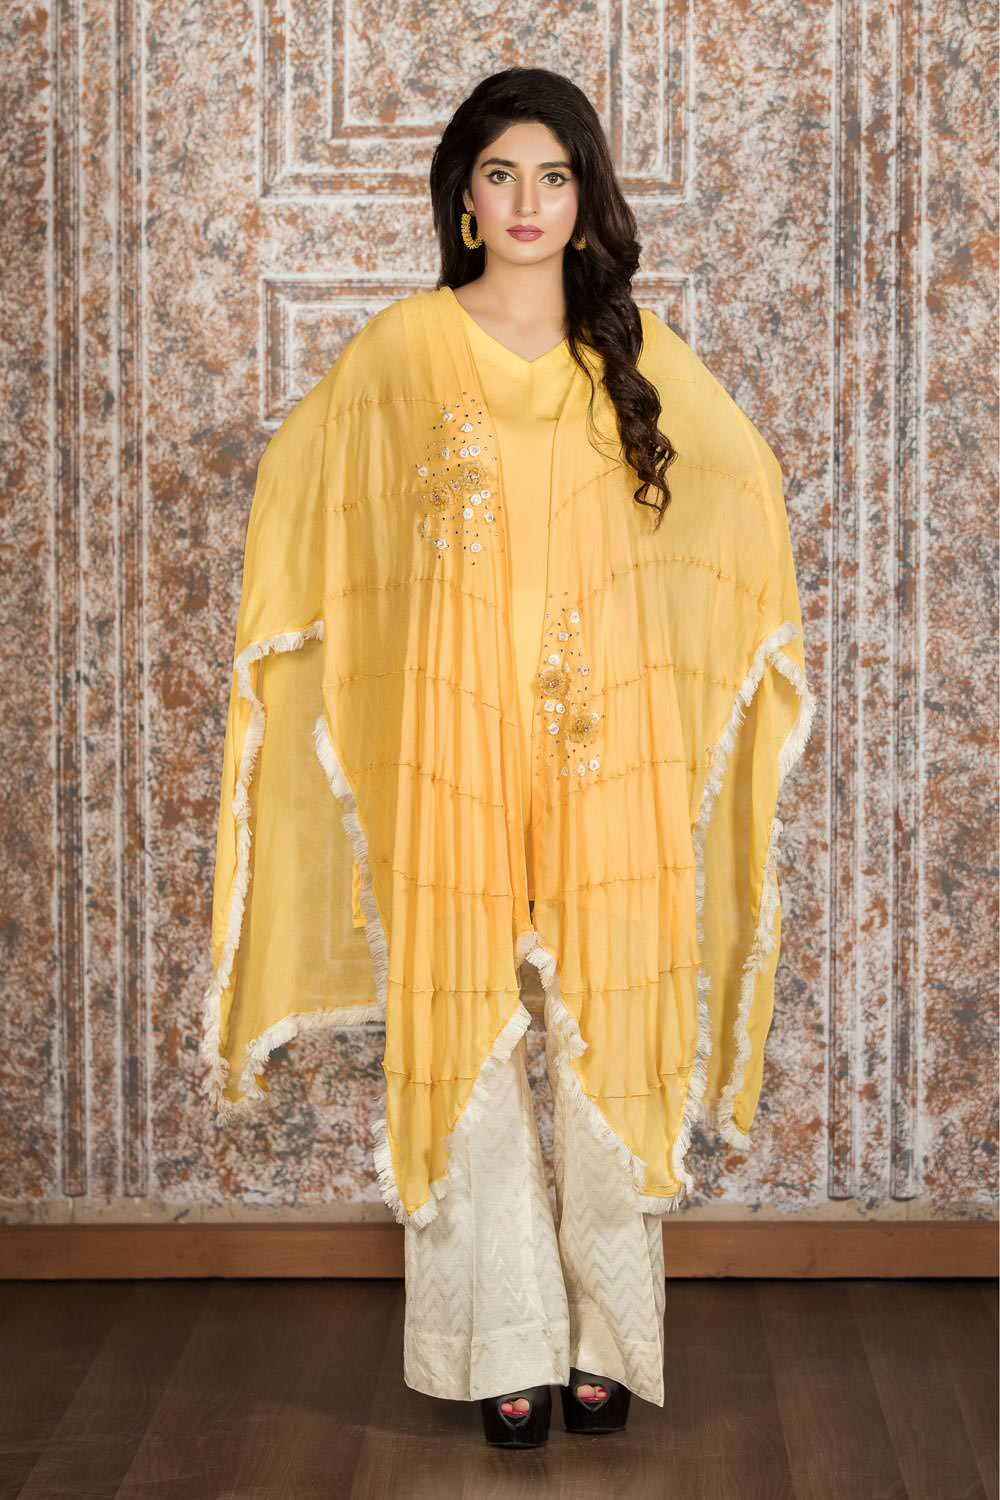 EXCLUSIVE YELLOW AND OFF WHITE CASUAL WEAR - SAC2168 - Exclusive Online Boutique